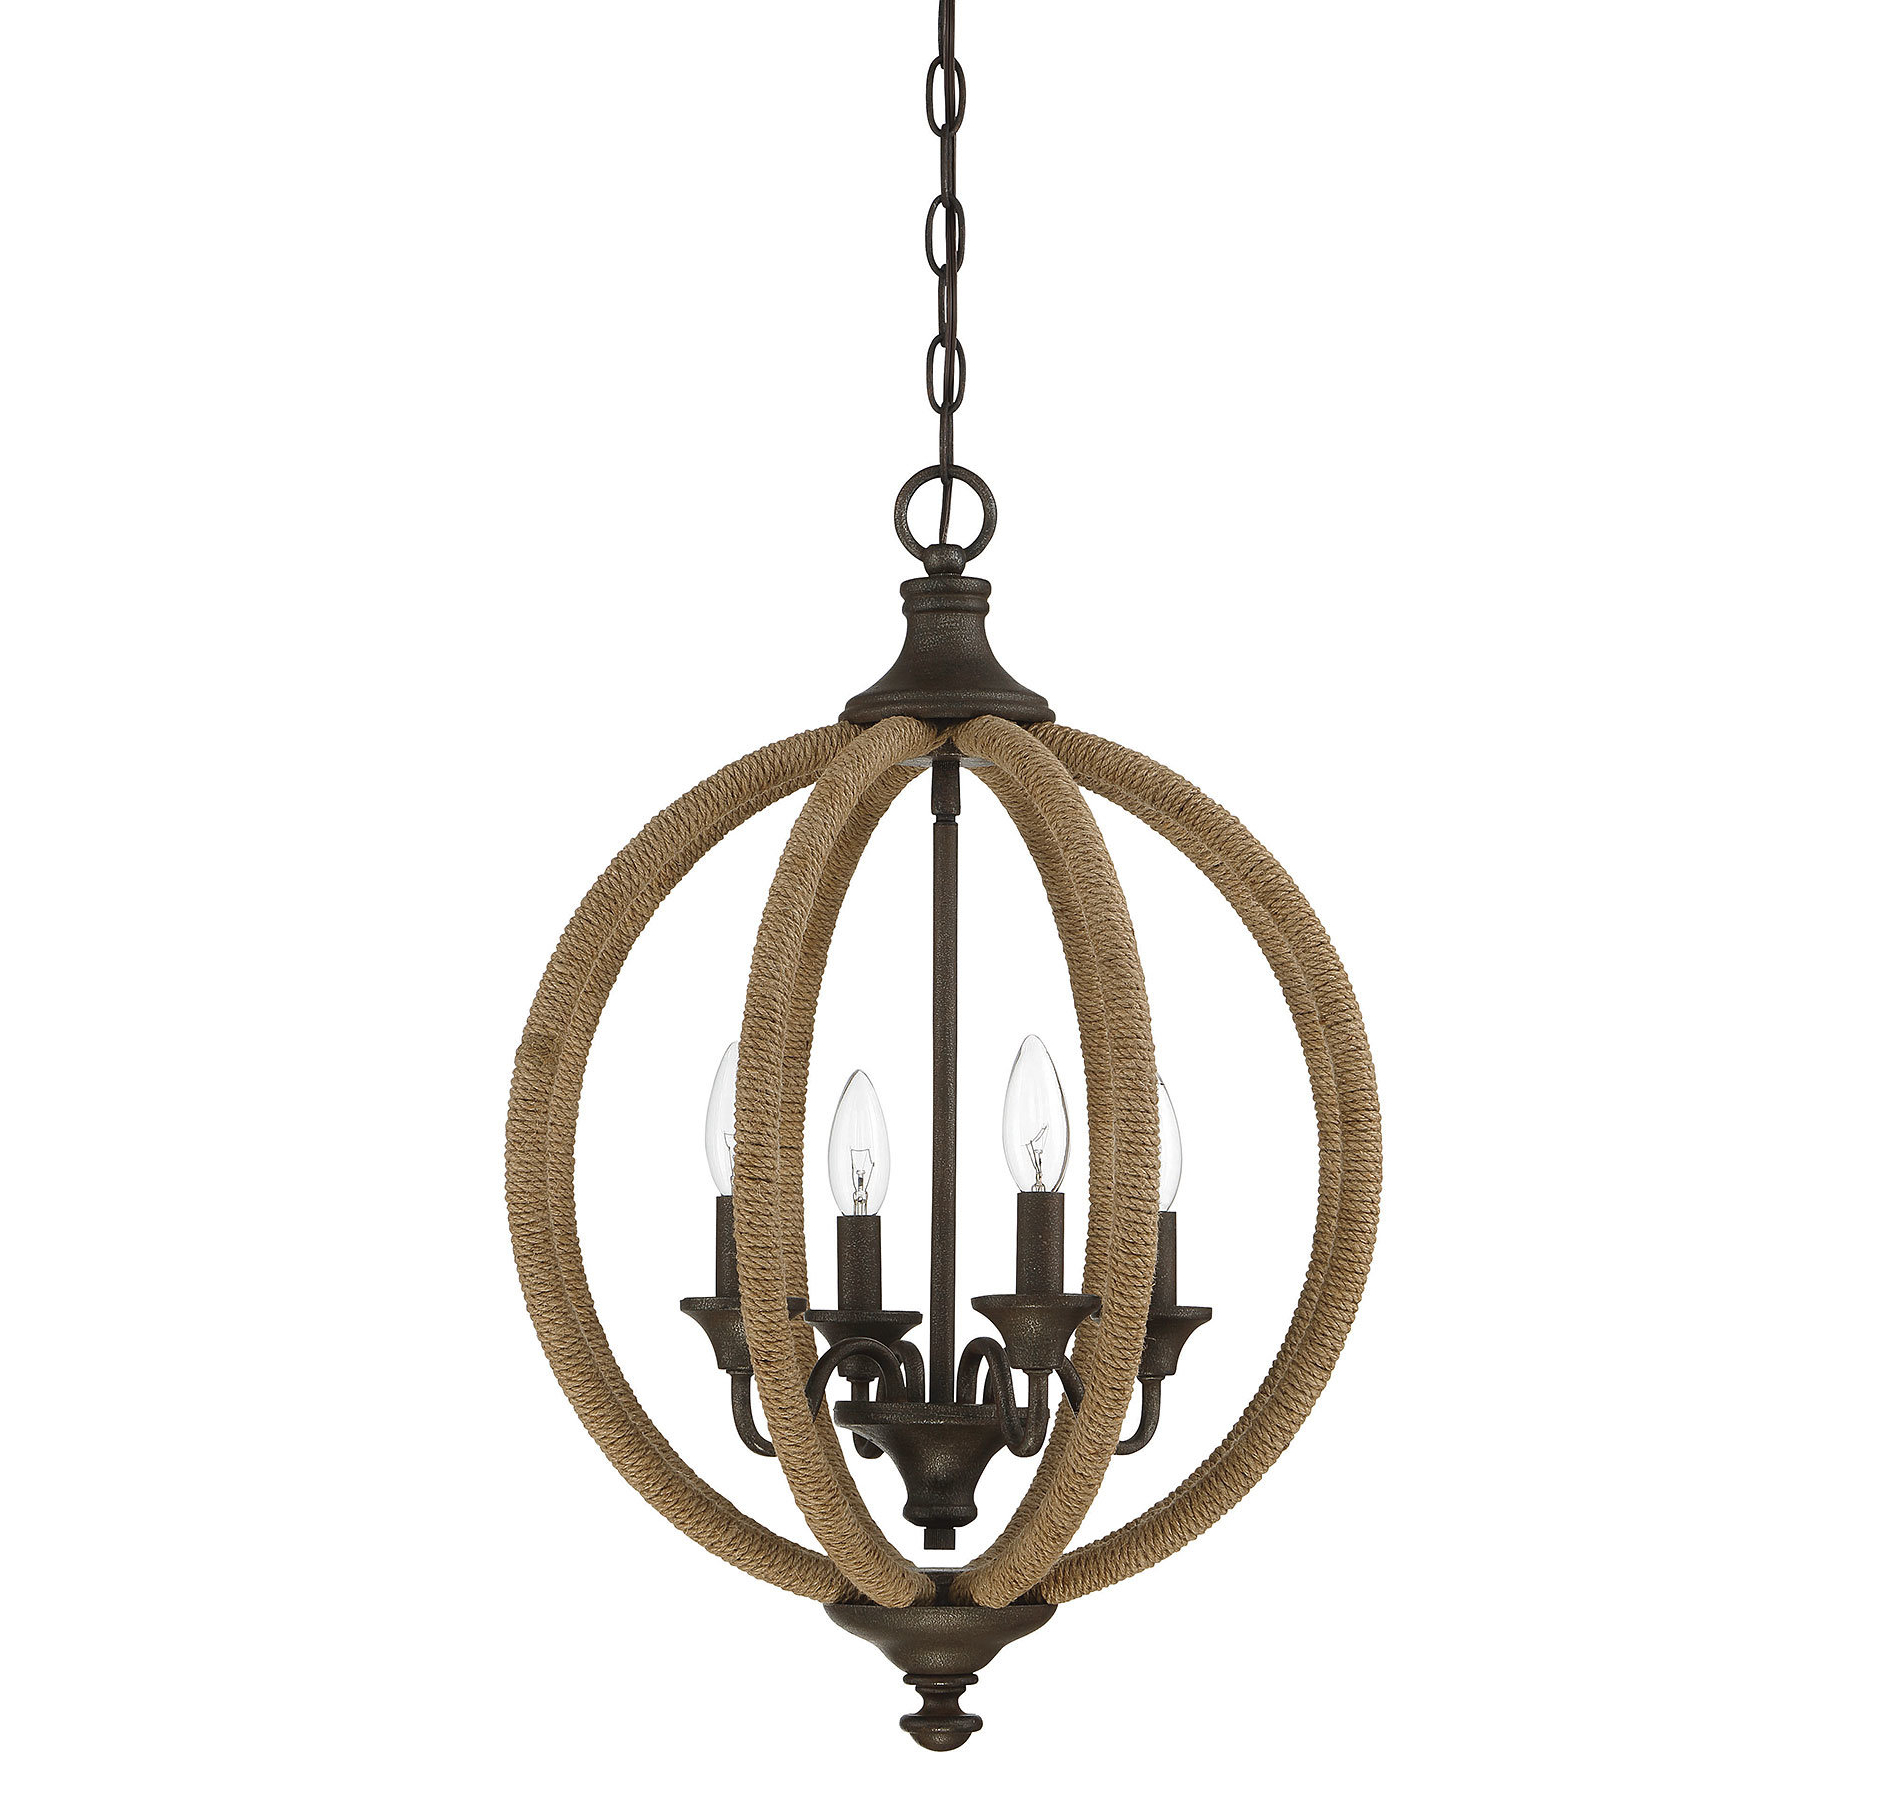 2019 Lynda 4 Light Globe Chandelier With Regard To Donna 4 Light Globe Chandeliers (Gallery 11 of 20)